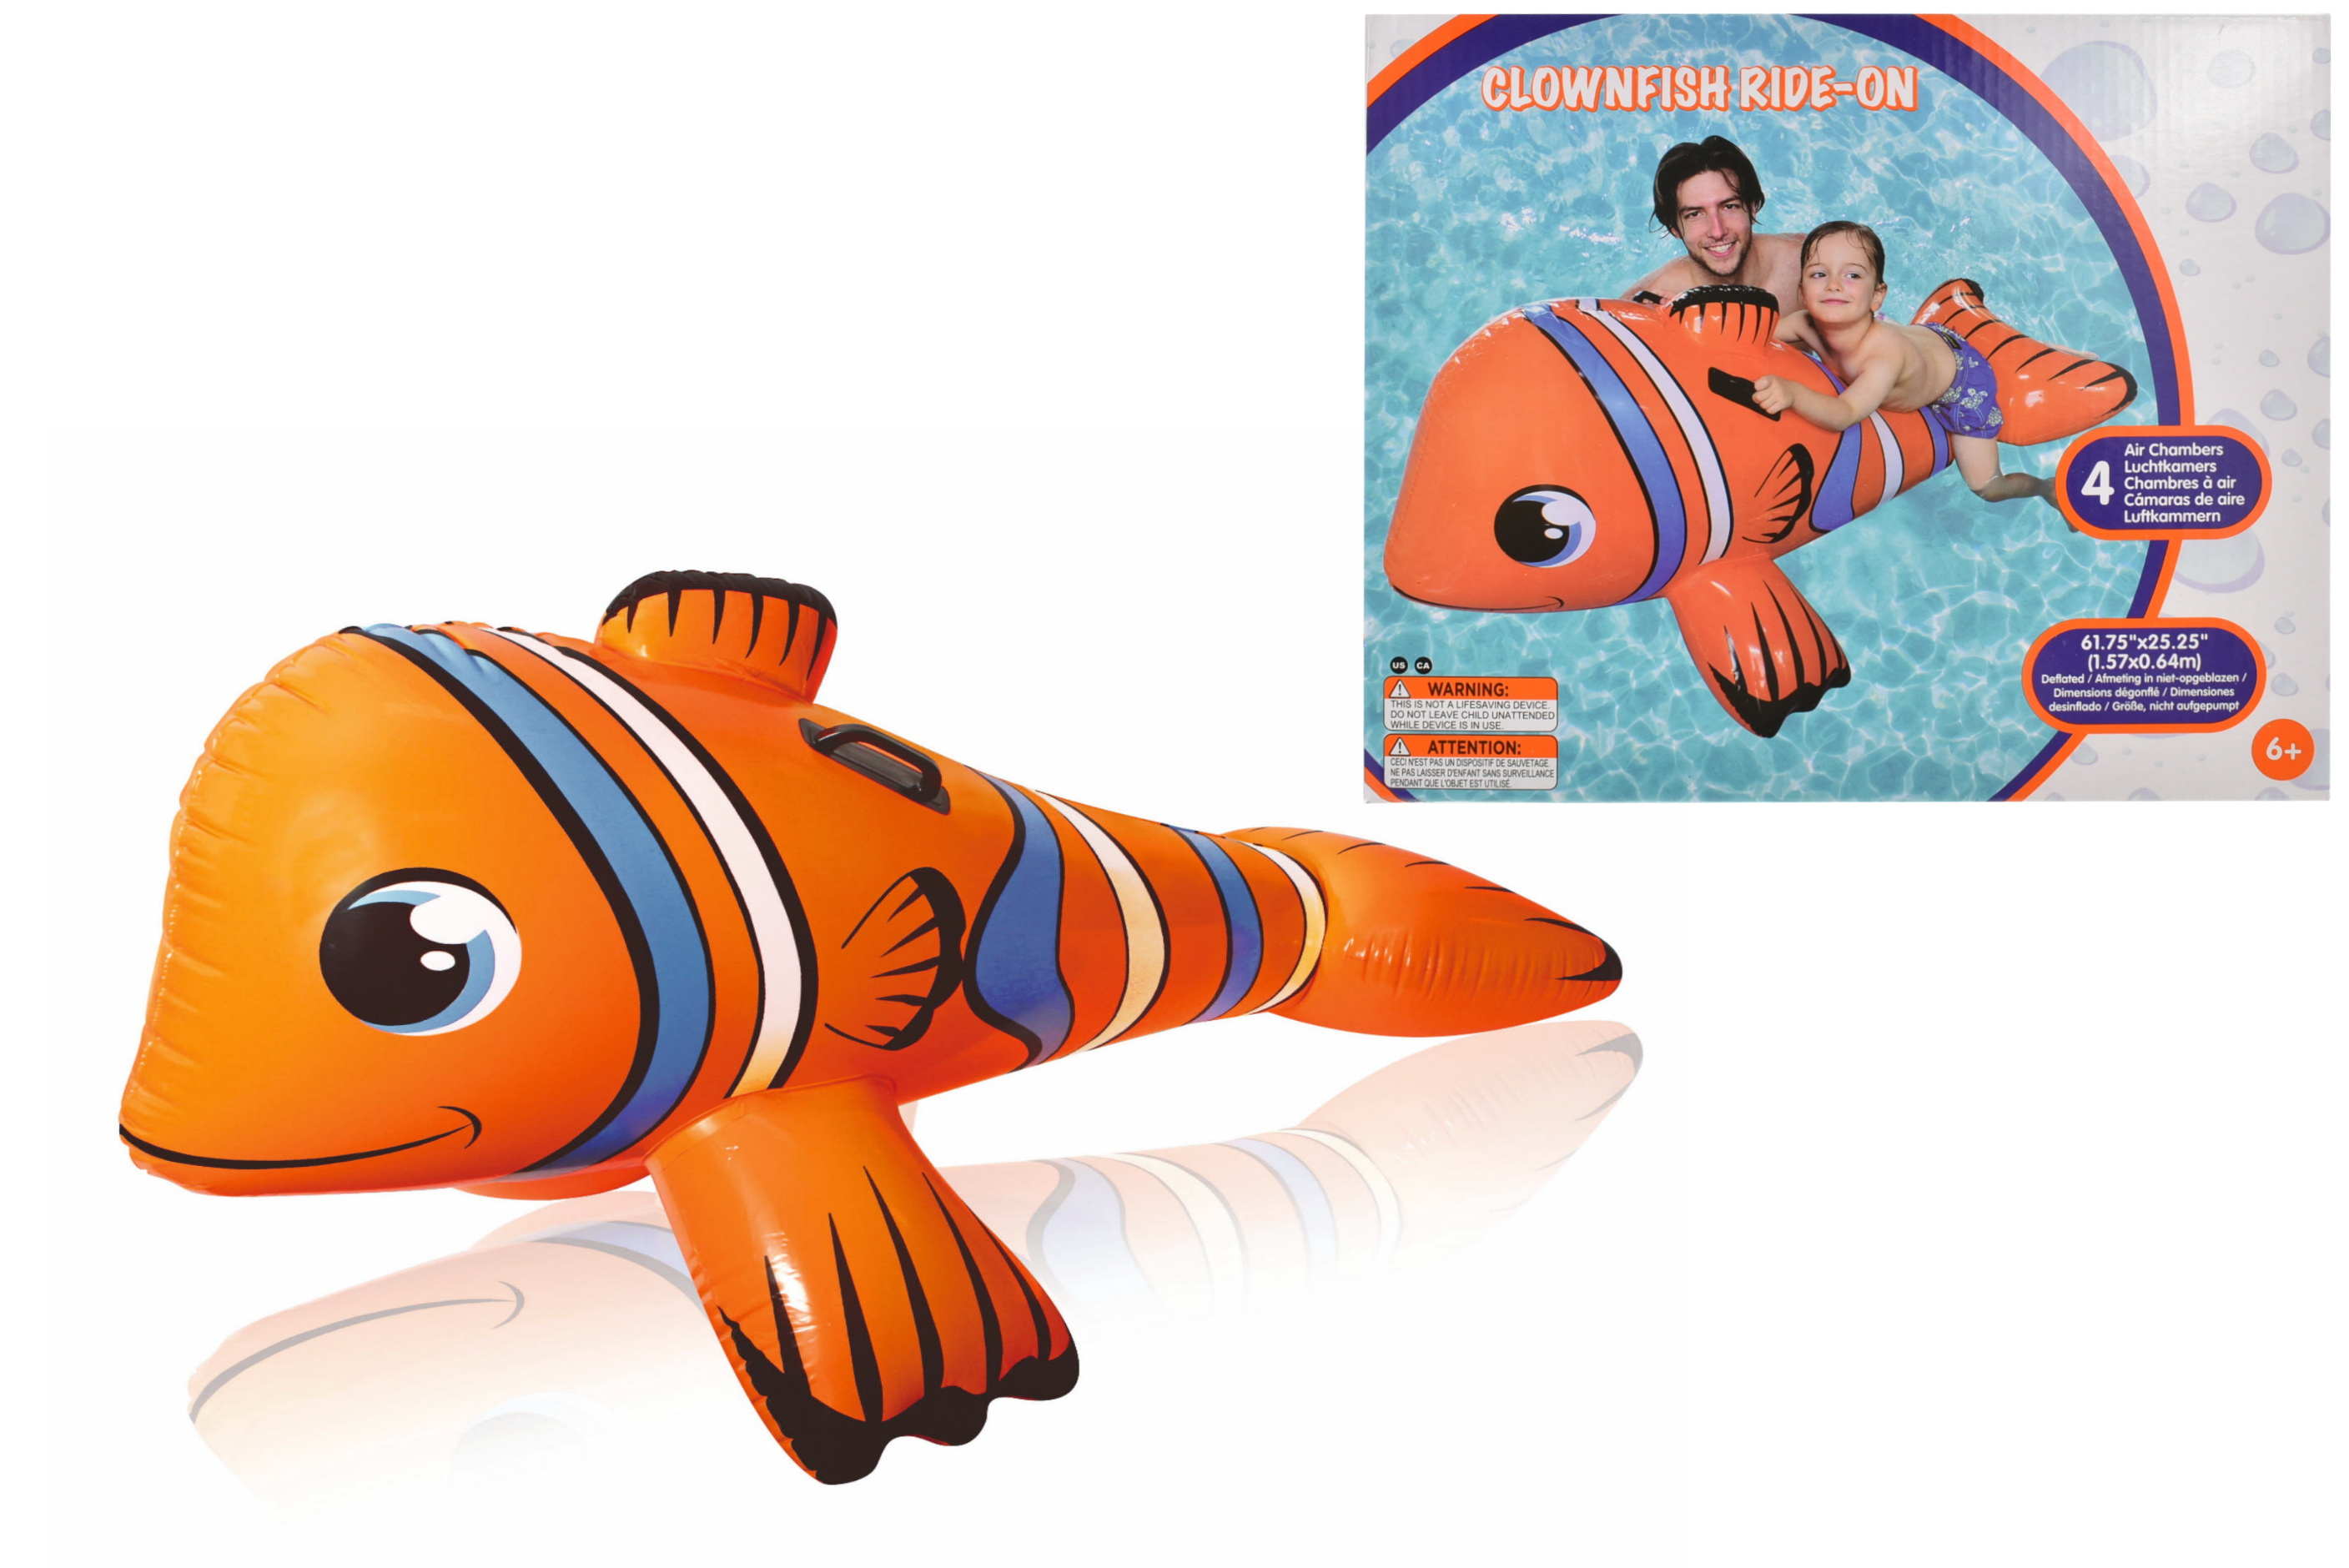 "Clown Fish Ride-On 62"" x 25"""